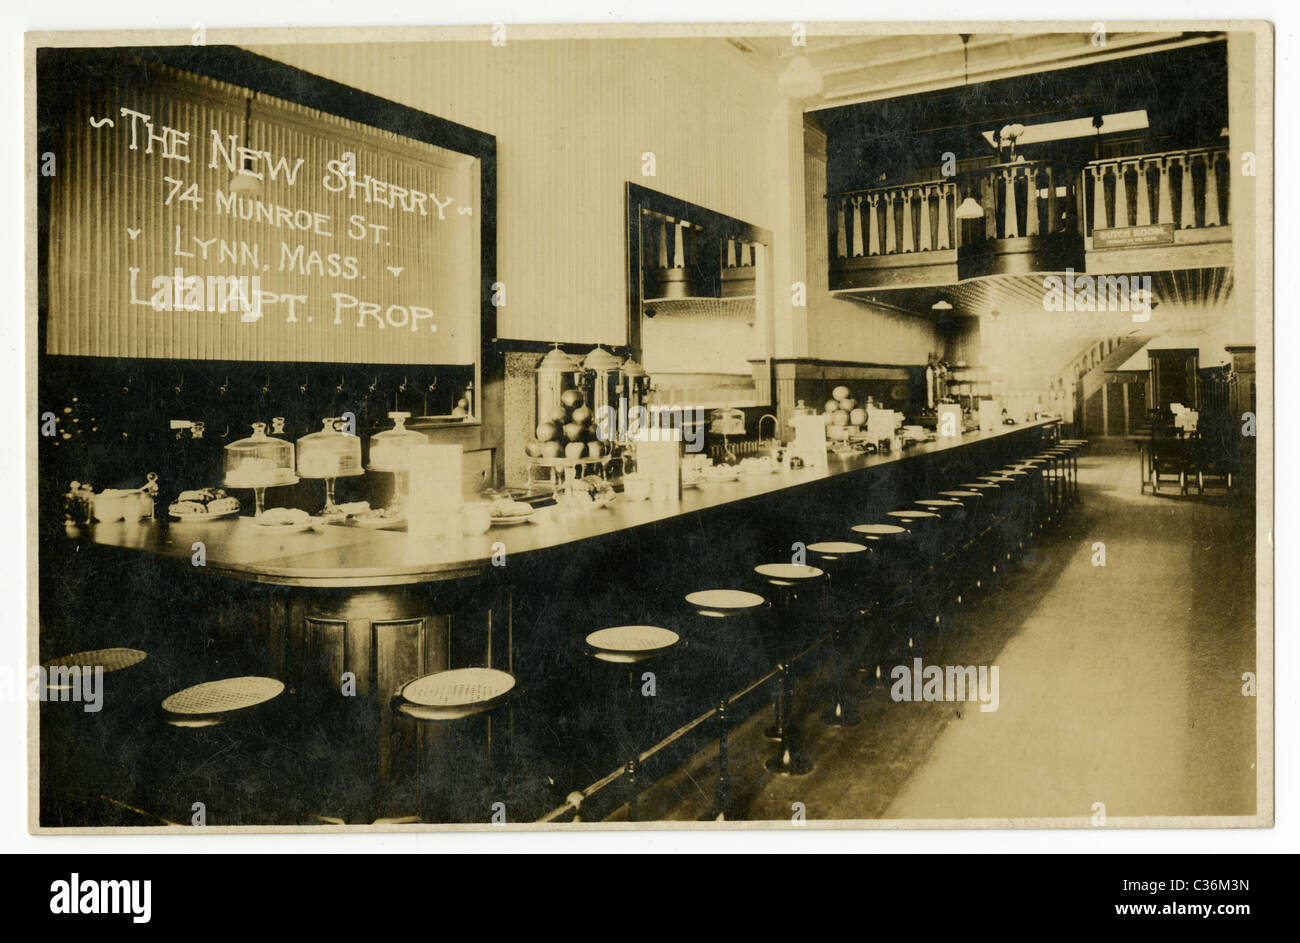 Circa 1910s real-photo postcard of The New Sherry, restaurant in Lynn, Massachusetts. - Stock Image